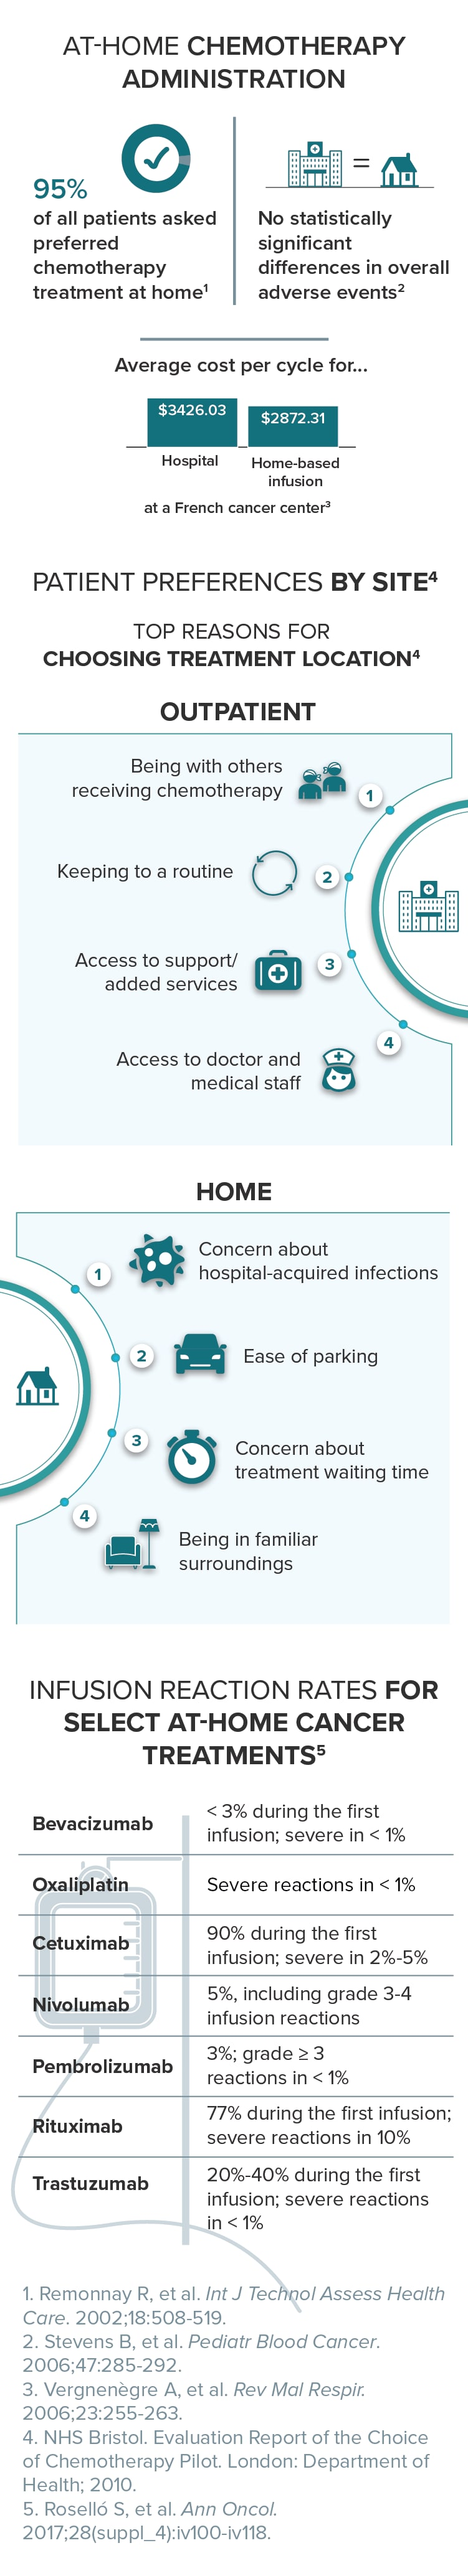 Advantages and Disadvantages of At-Home Chemotherapy Administration